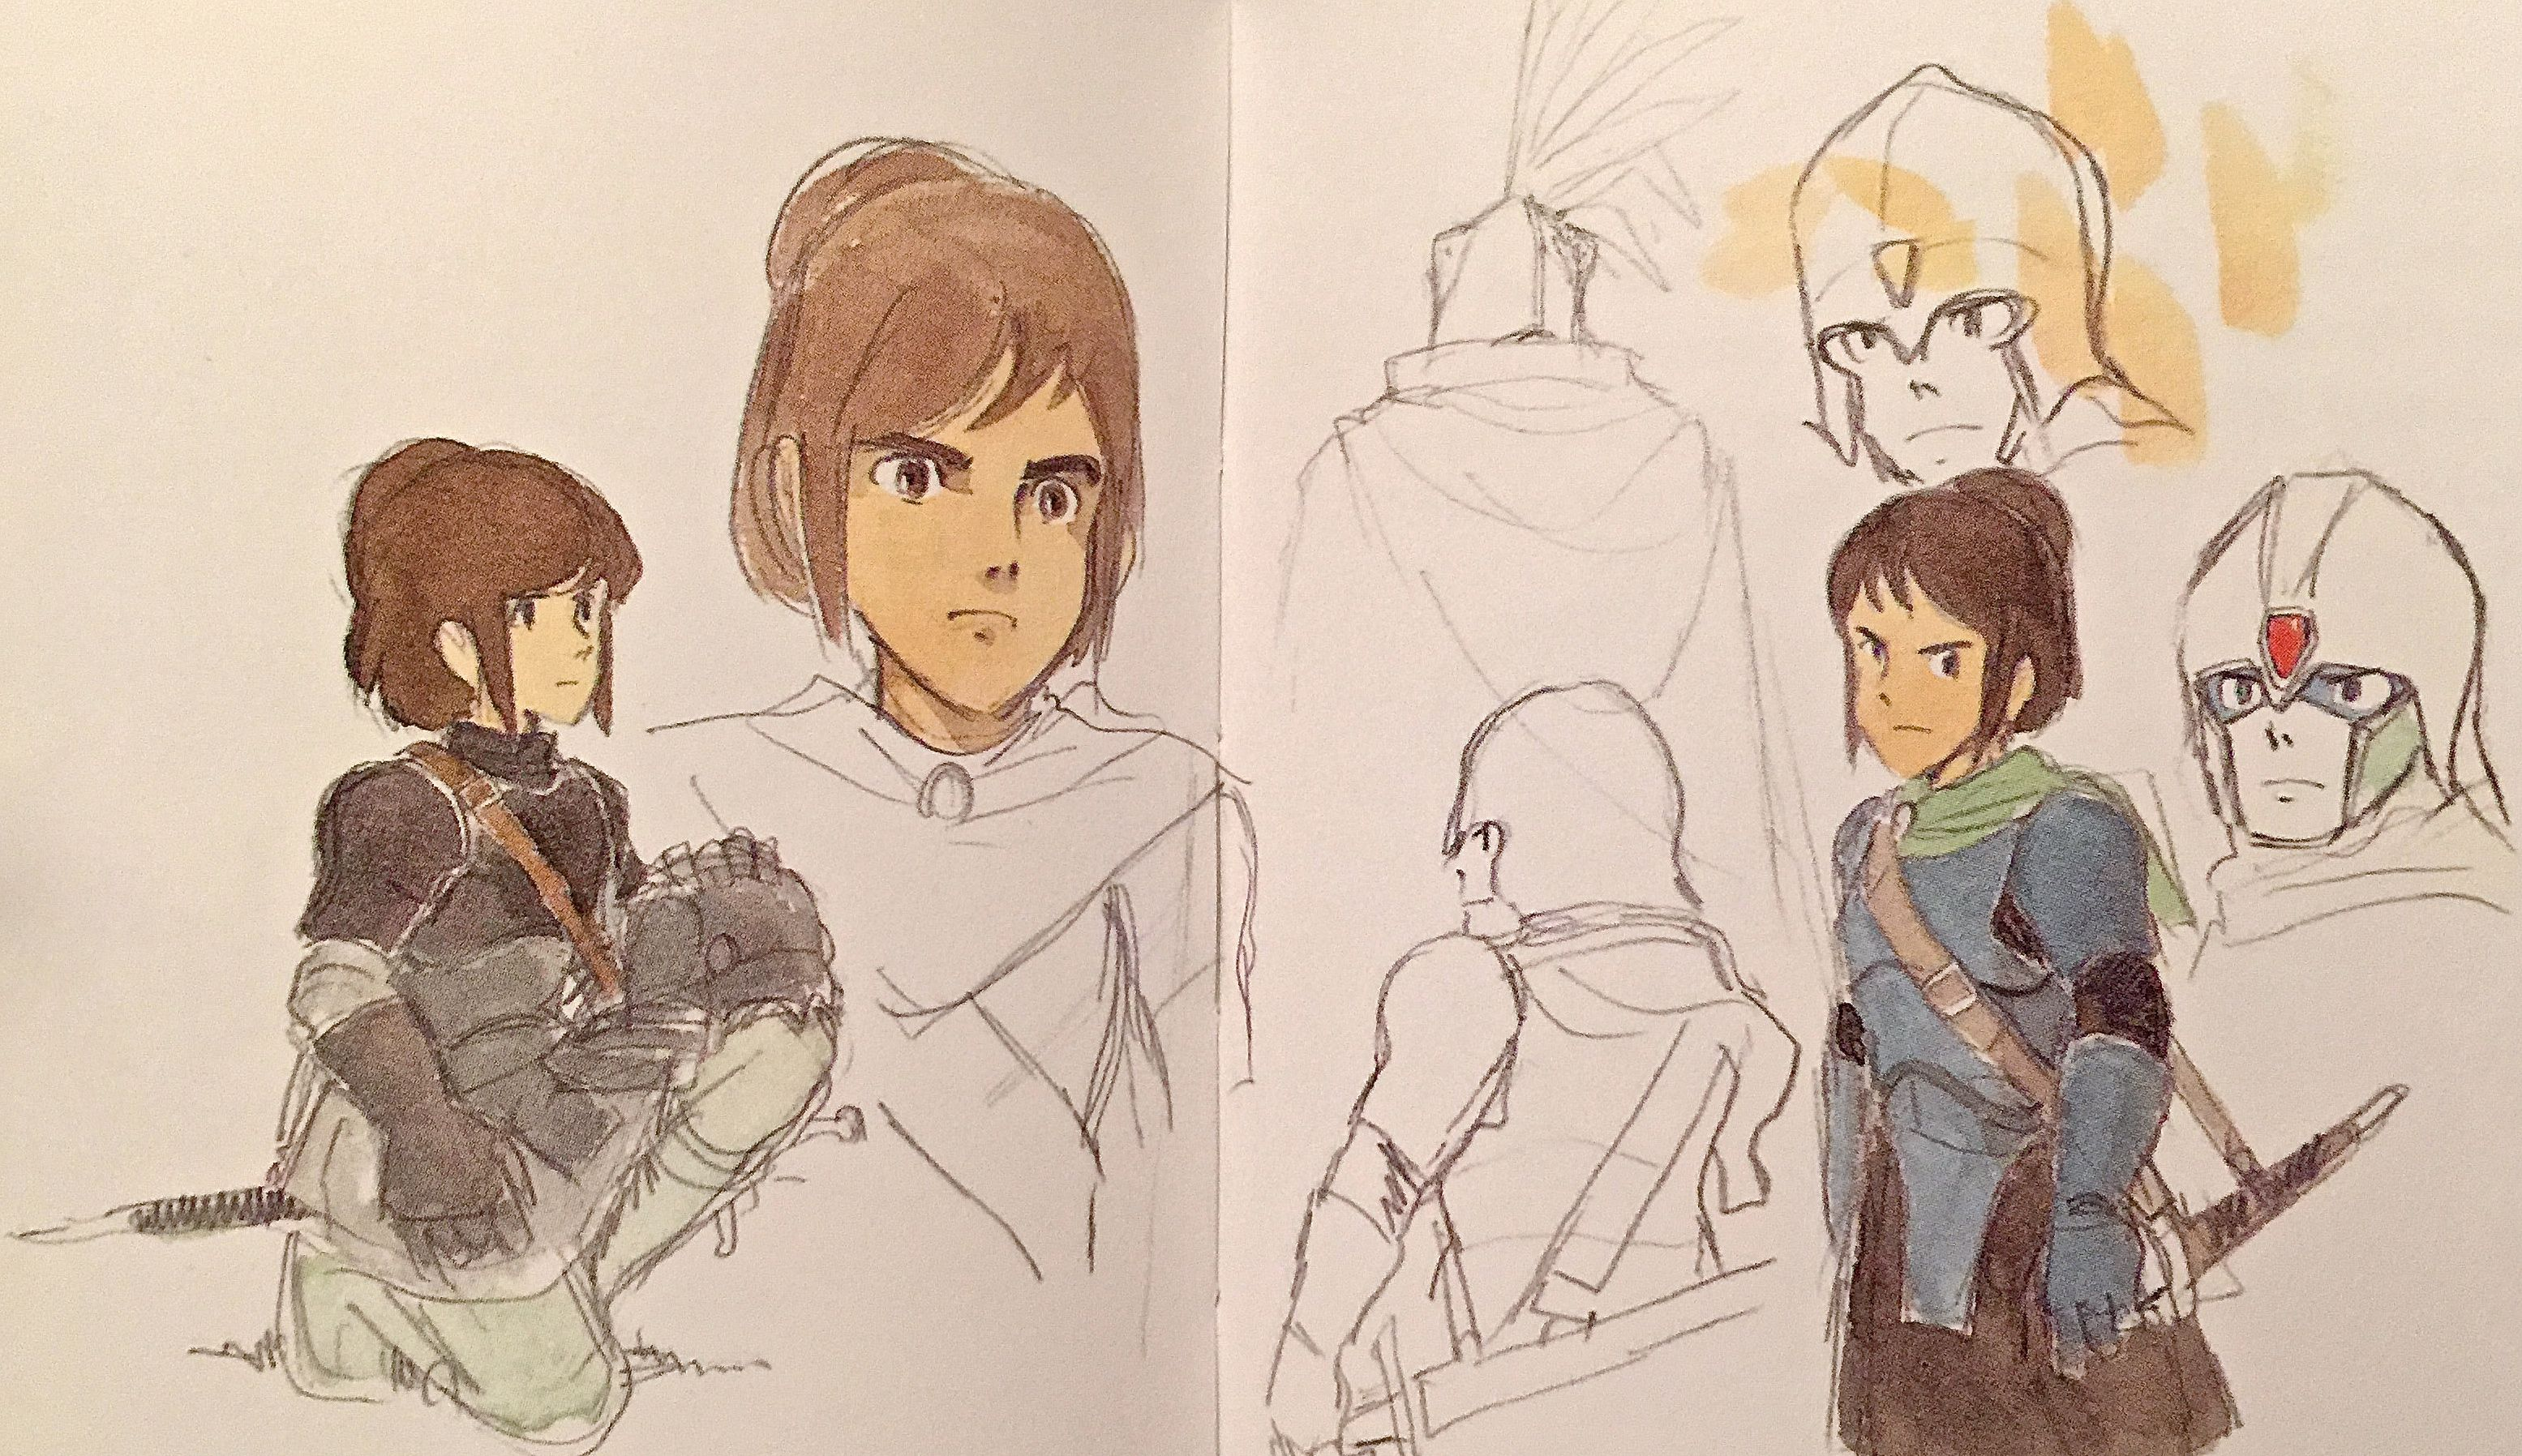 Period Drama Motif ===== The drawings Miyazaki accumulated between 1980-1982 formed the basis for the work of Nausicaa to Princess Mononoke; however, he added more science fiction elements to Nausicaa. ===== Sengoku Majo